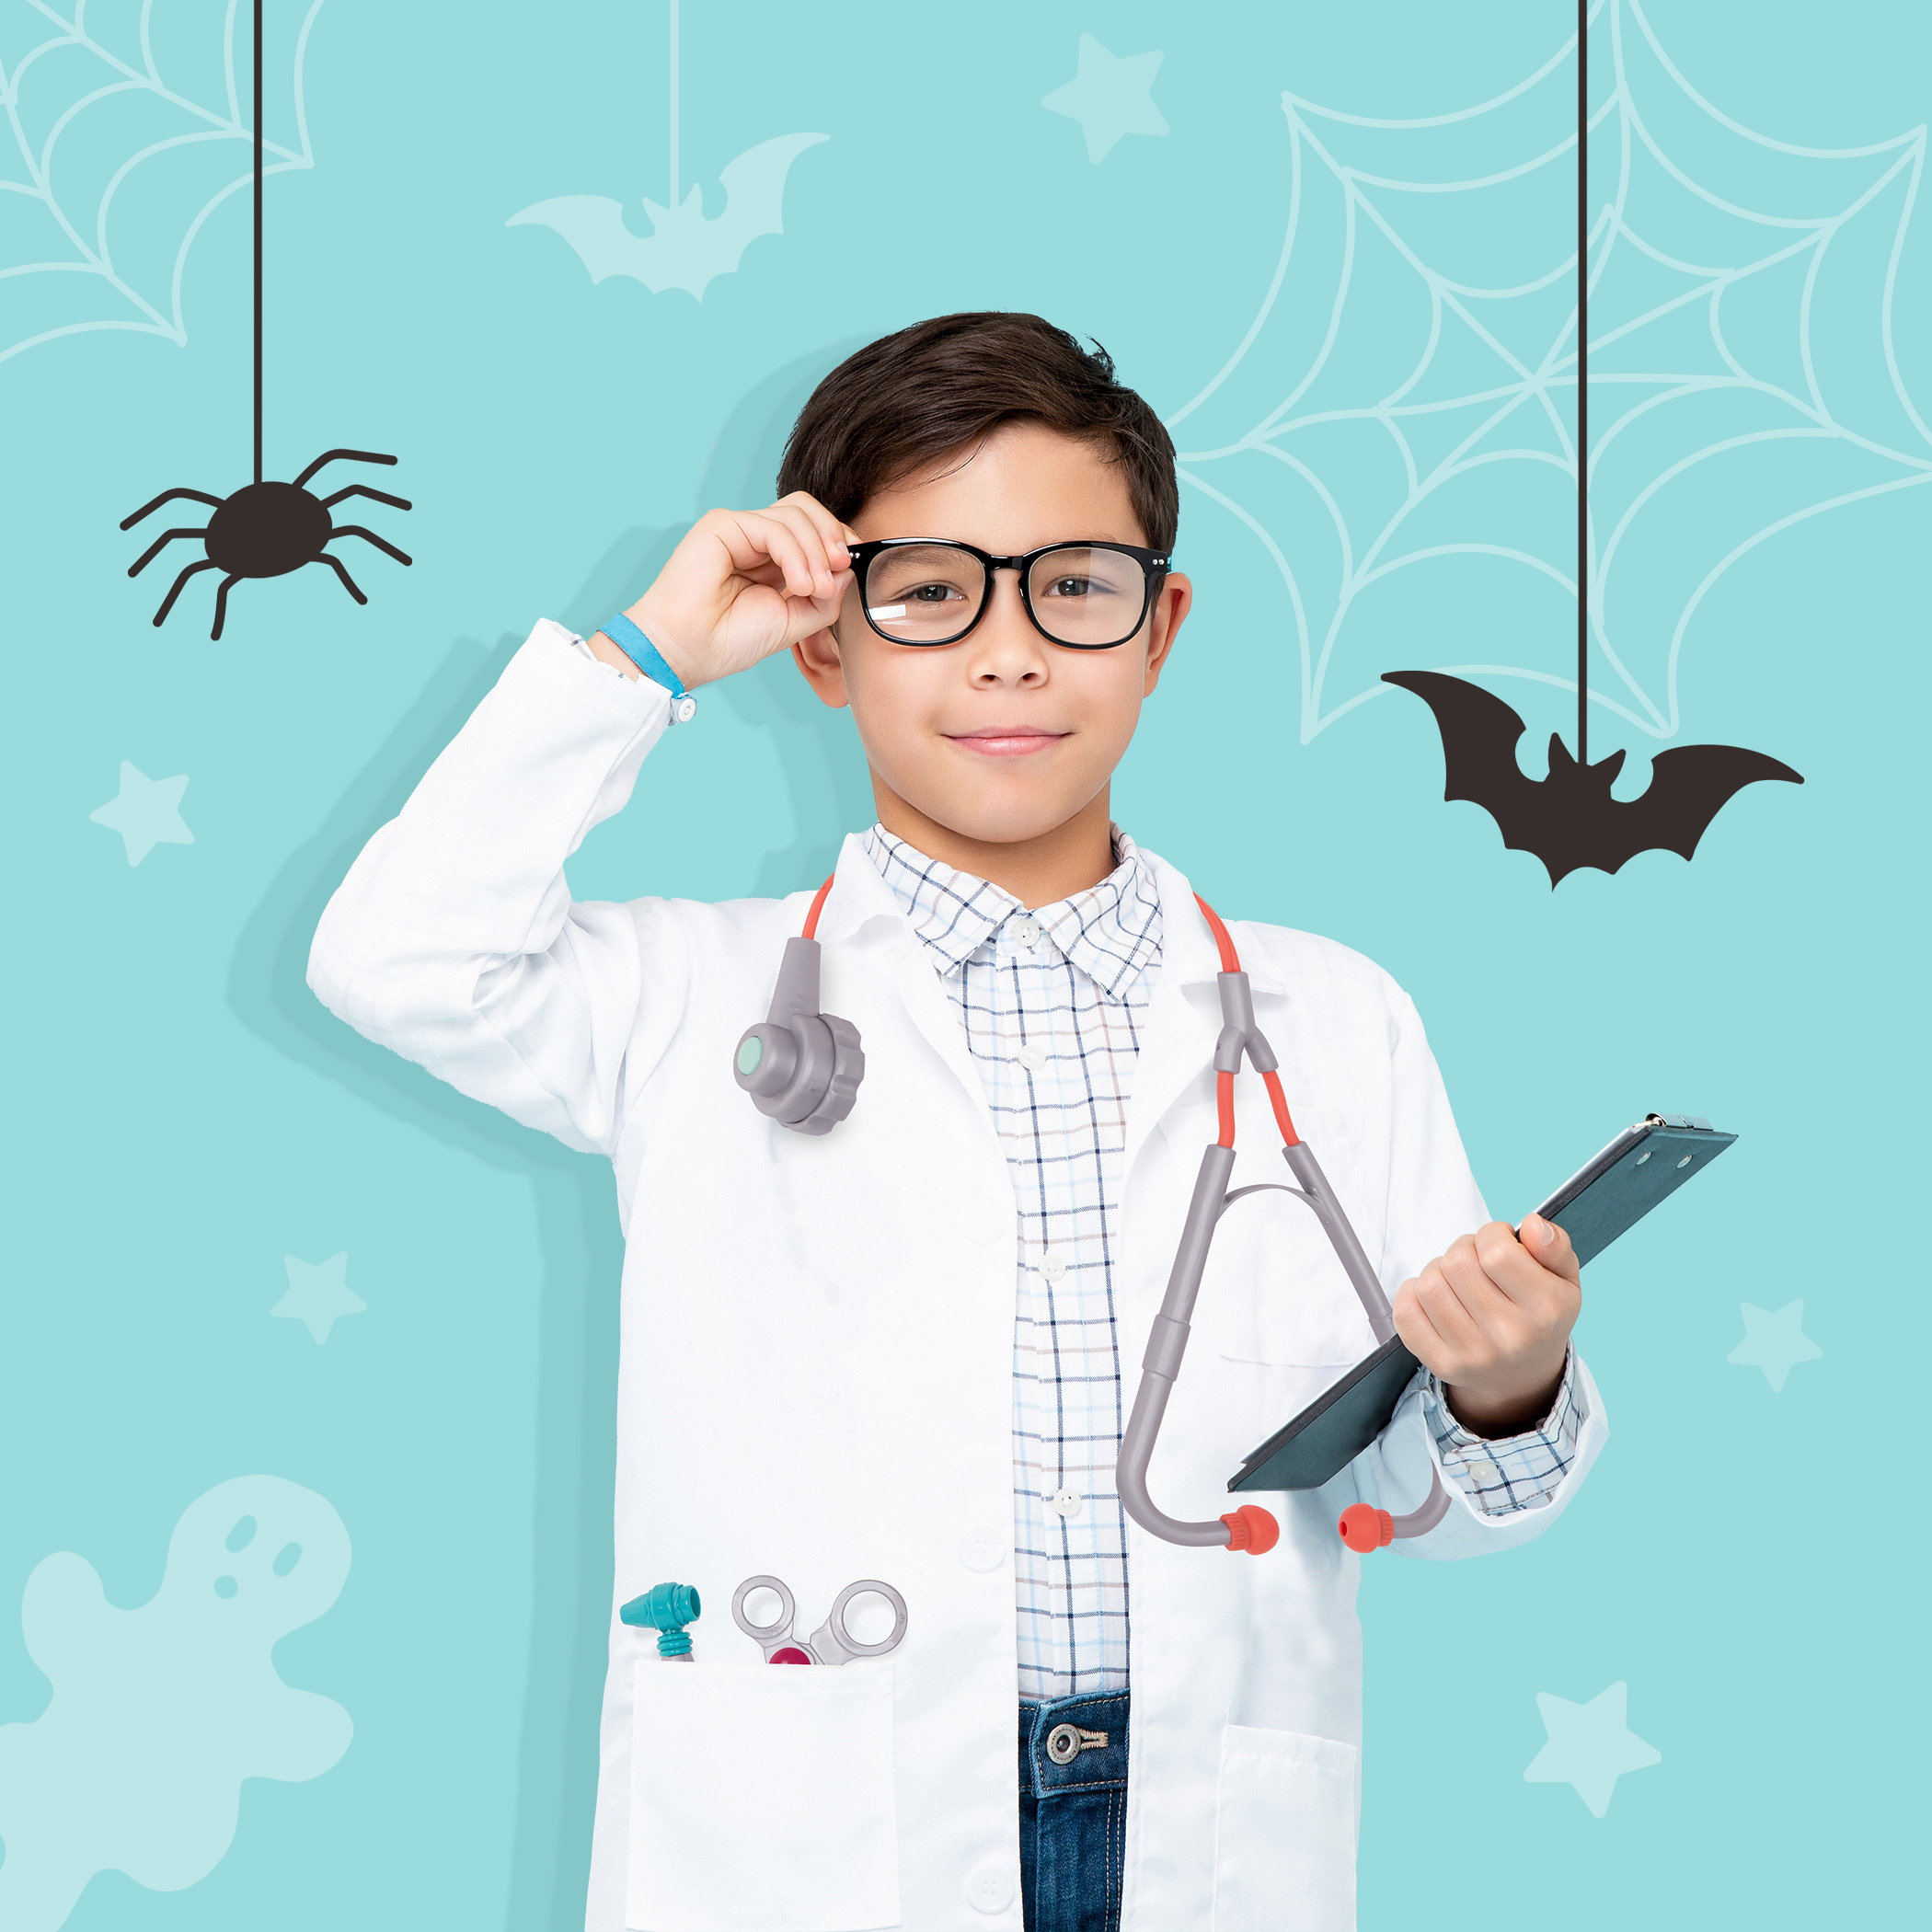 Boy in doctor costume.